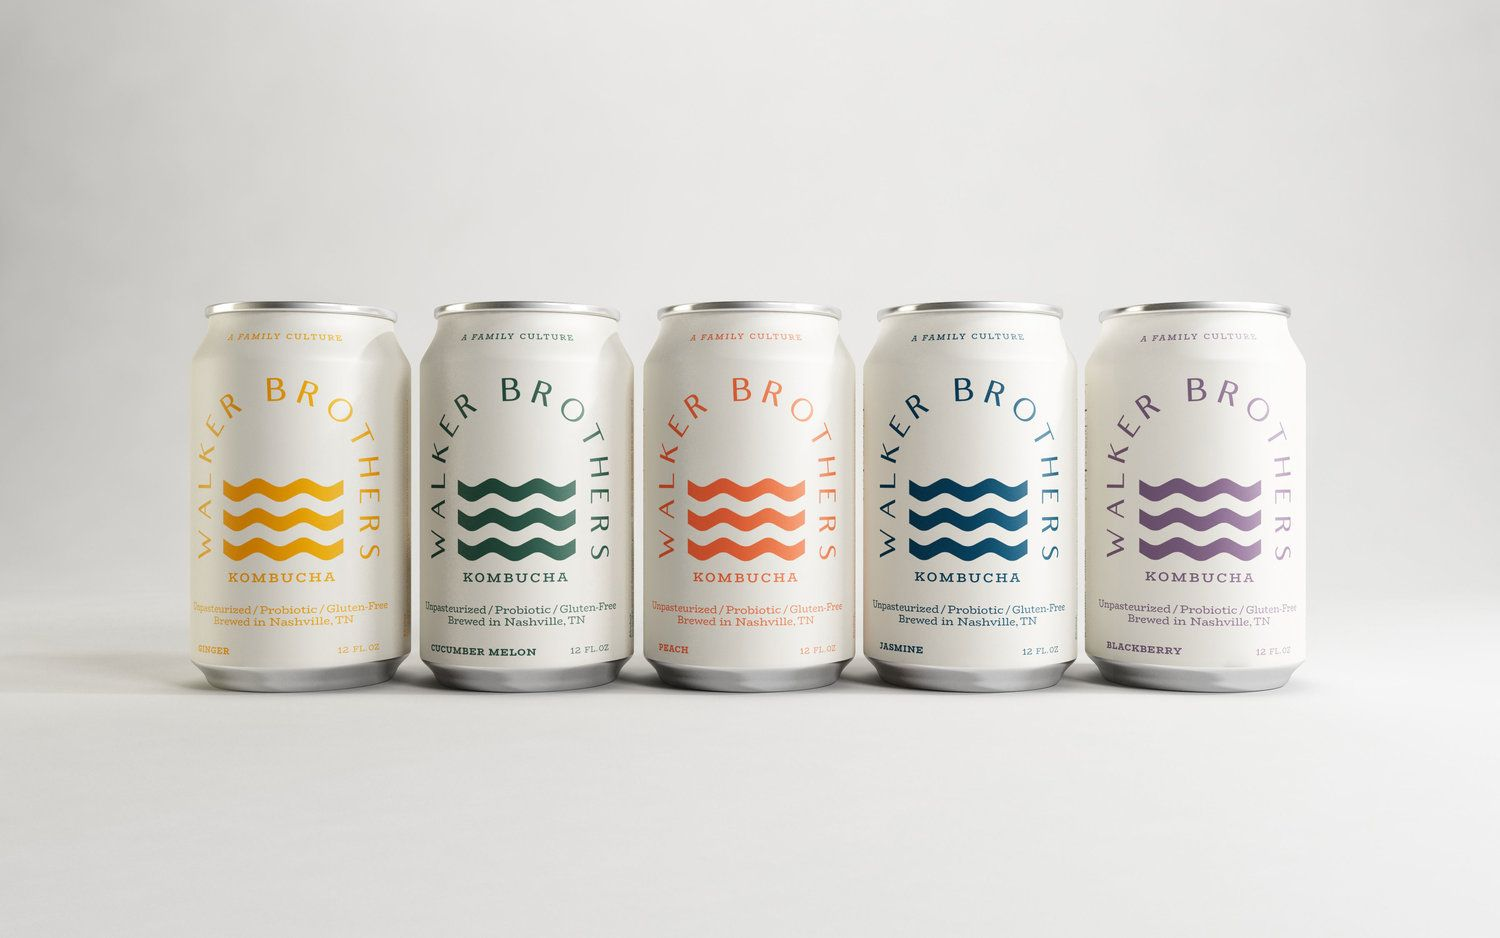 makebardo_Walker_Brothers_02.jpg Kombucha, Beer design